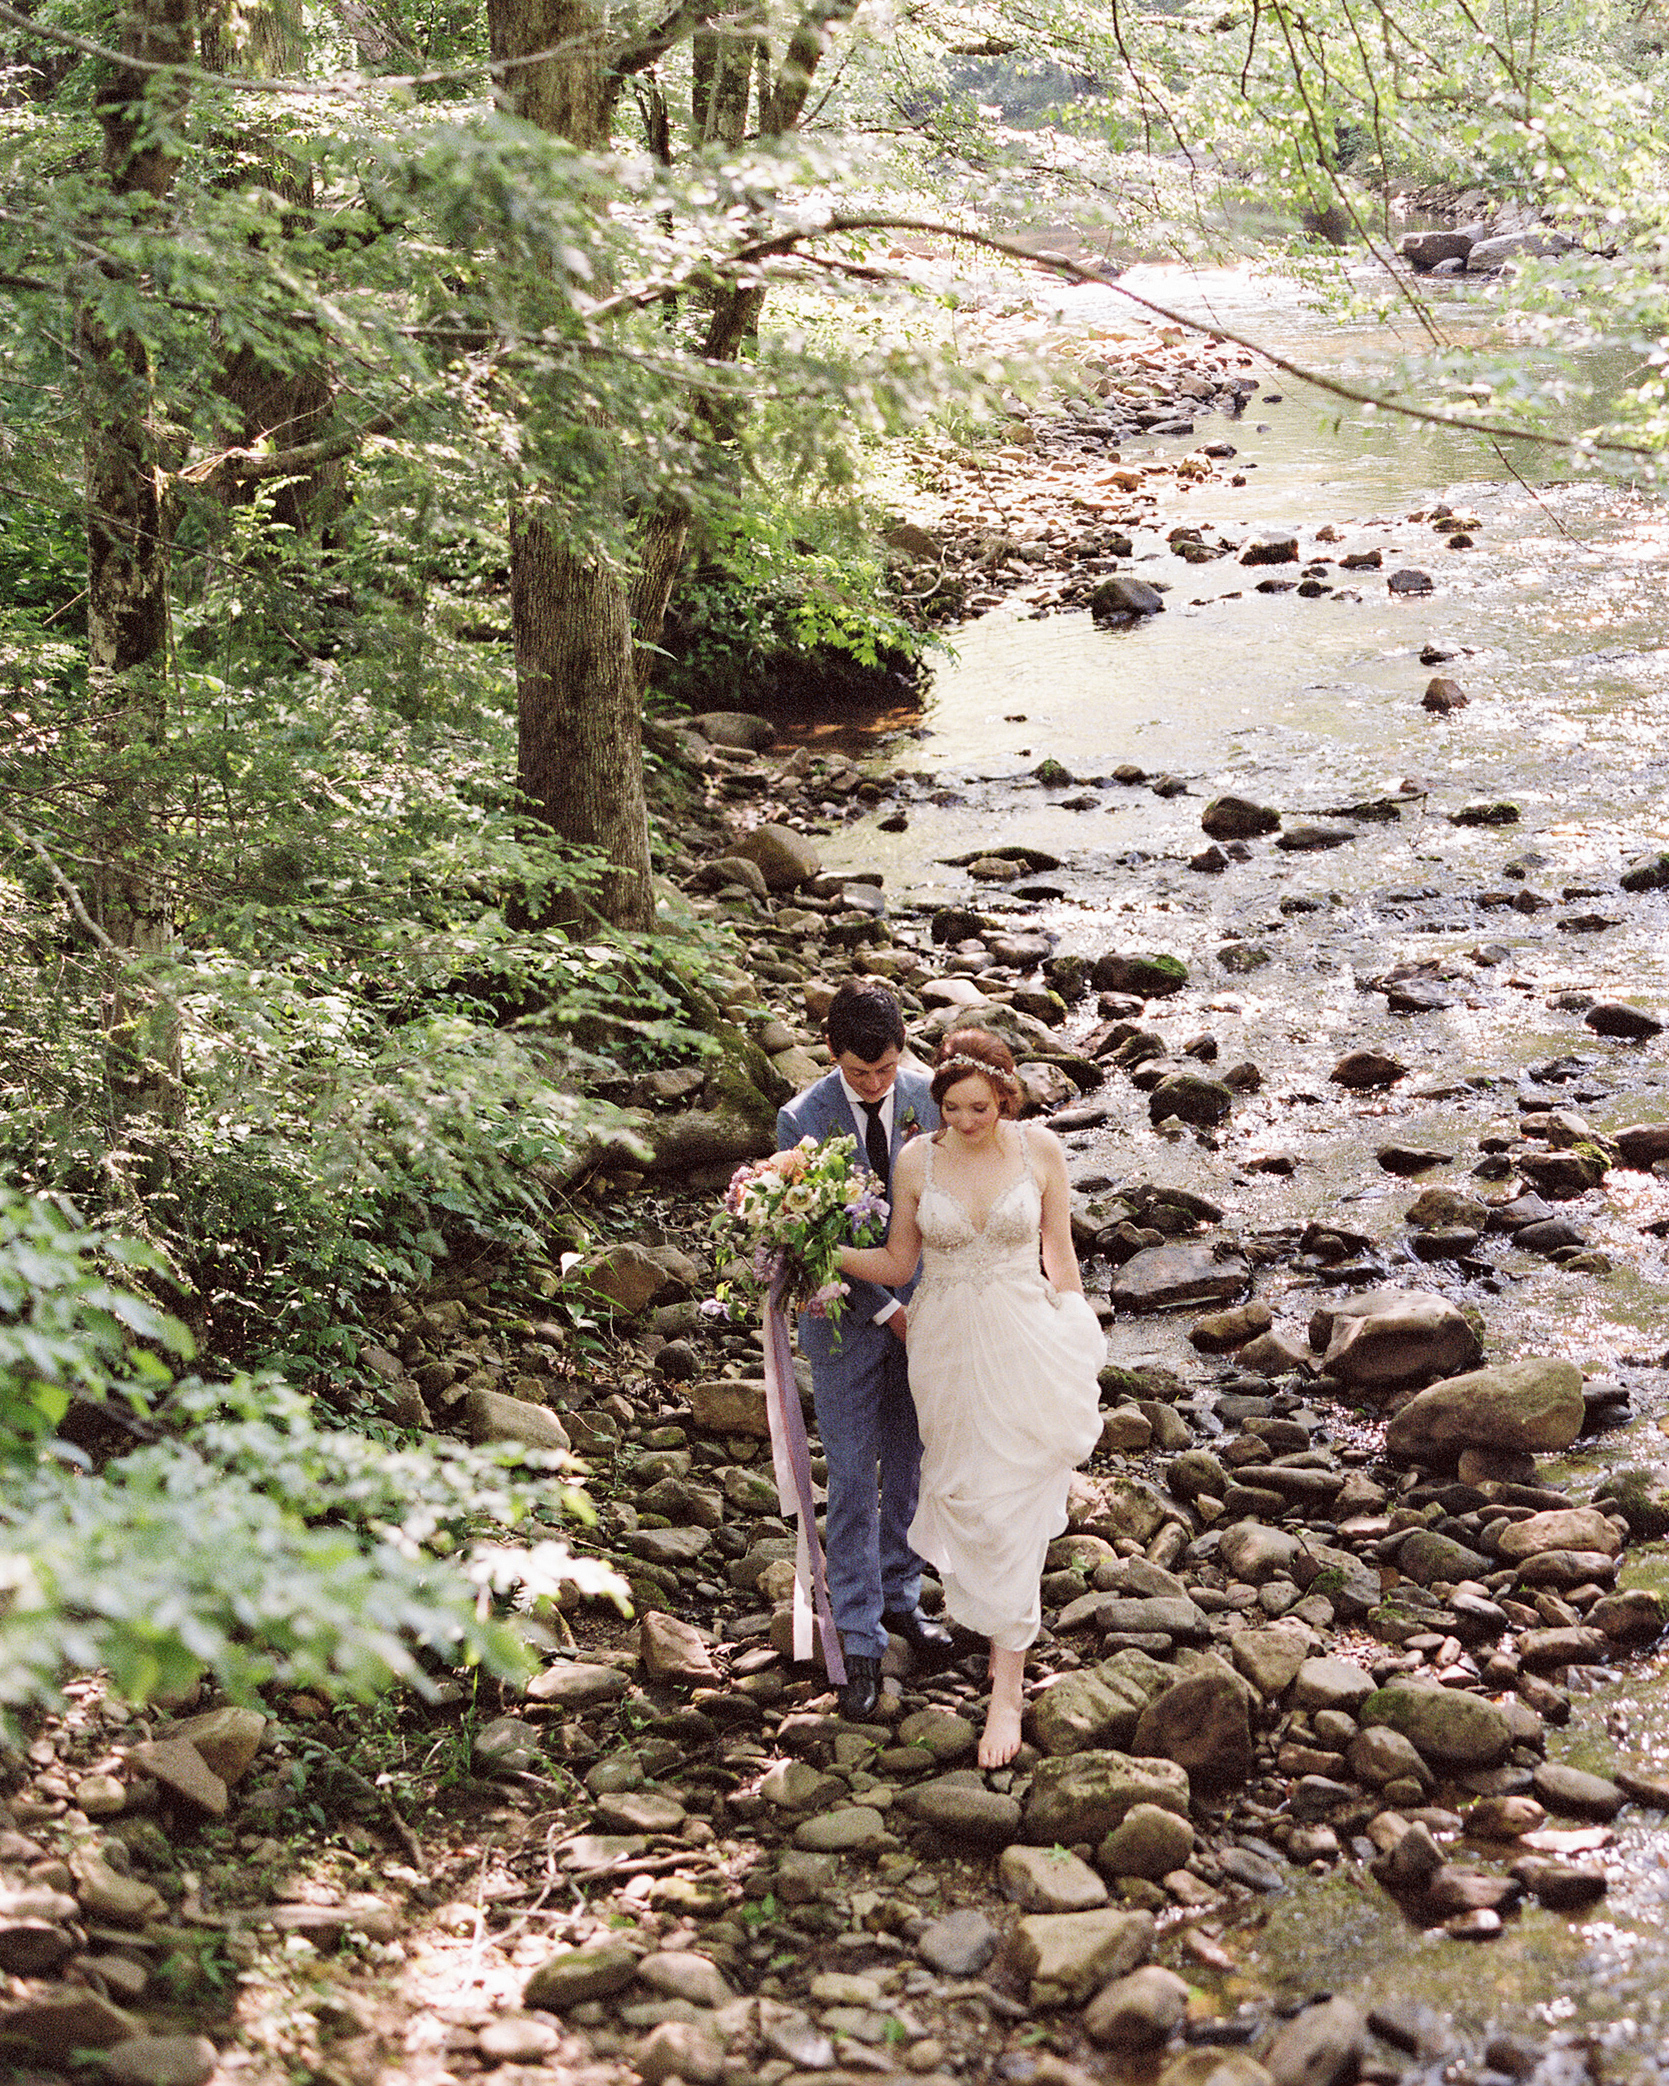 Larkin & Eric's Tennessee wedding - creek